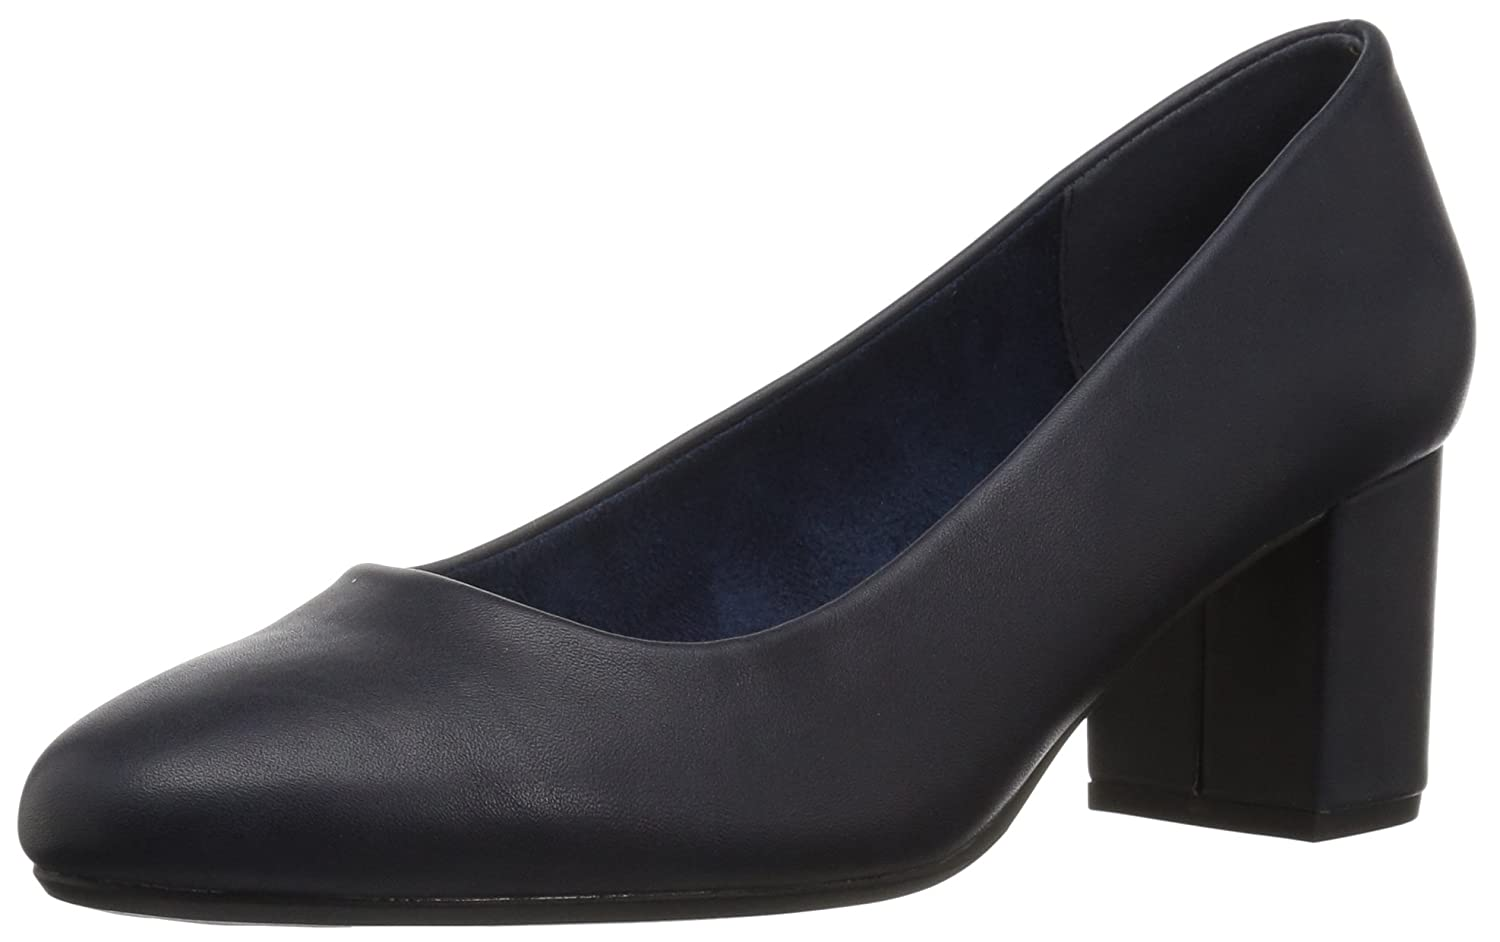 Easy Street Women's Proper Dress Pump B072Q1TMQB 6.5 B(M) US|Navy